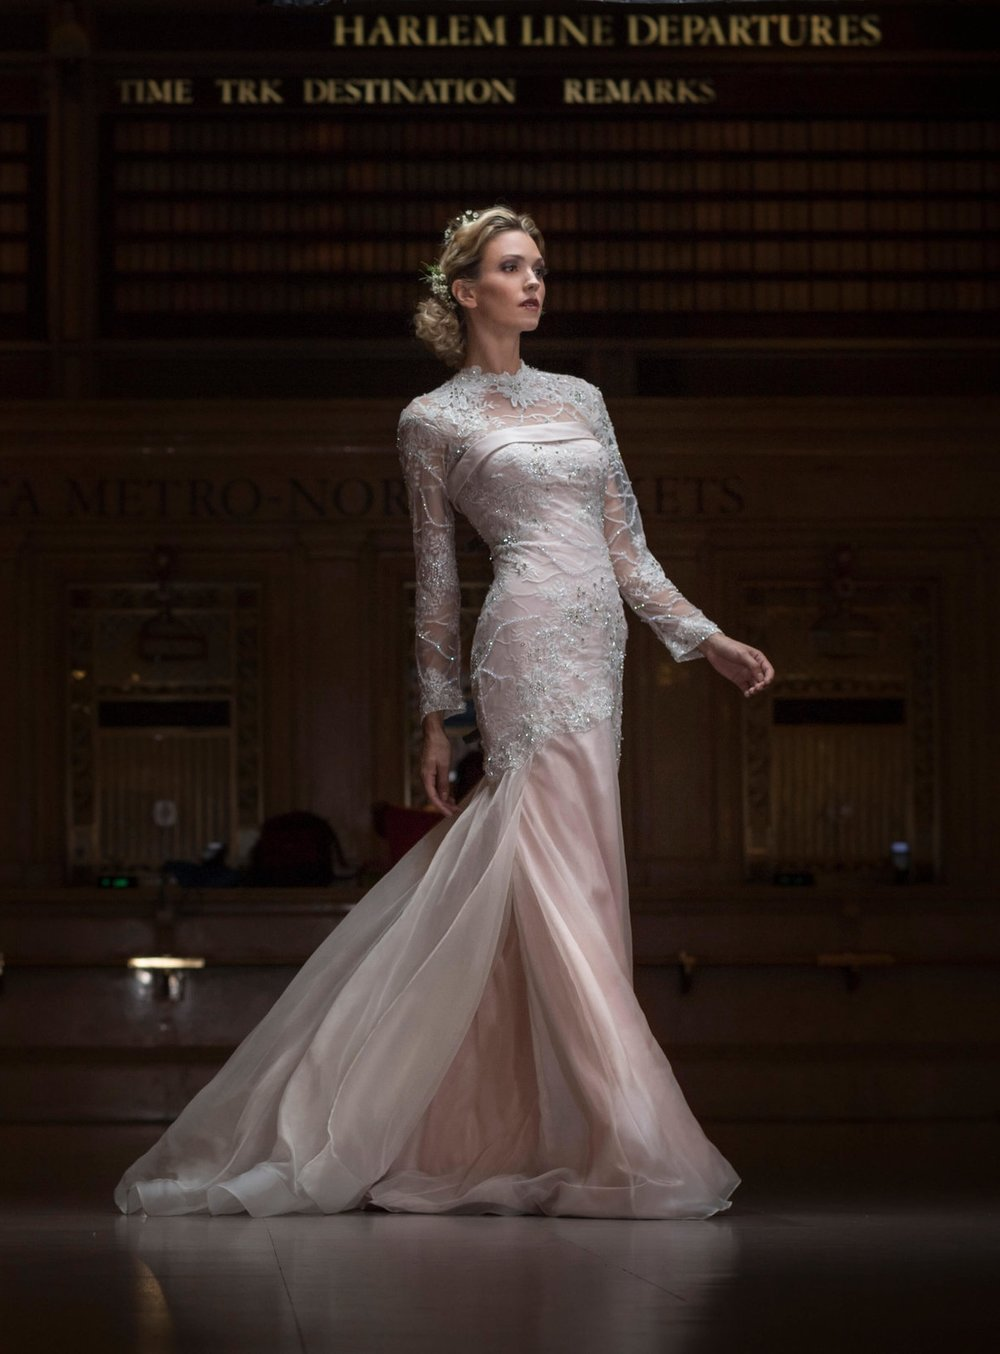 The Aurora Gown without its peplum organza skirt